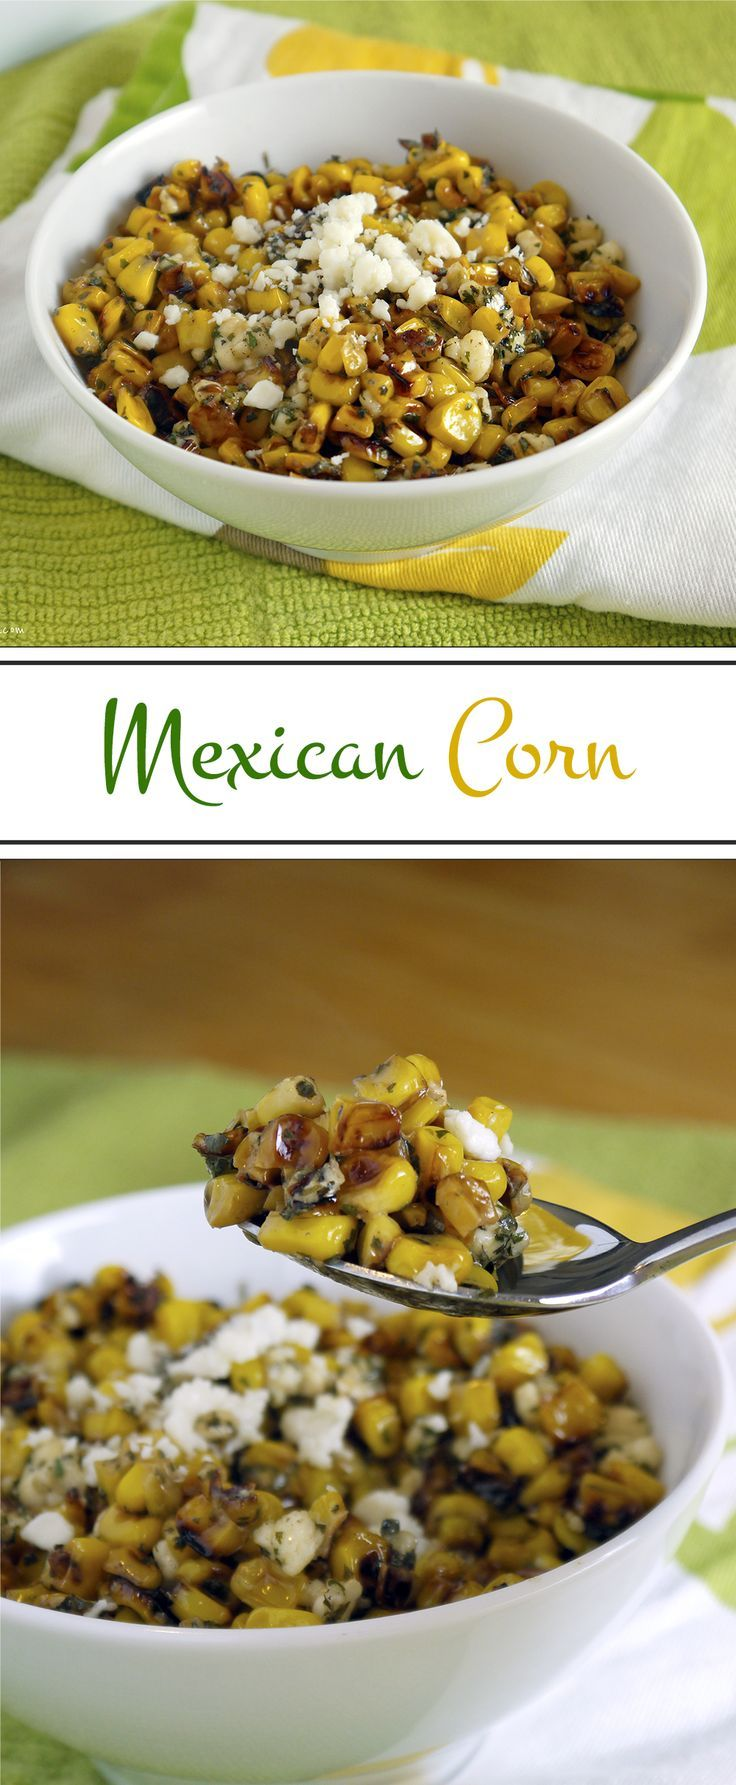 Mexican Grilled Corn: Sweet, salty and cheesy with a little bit of a kick. The perfection of Mexican street corn in a bowl. Easier to eat, but just as delicious! | Stress Baking